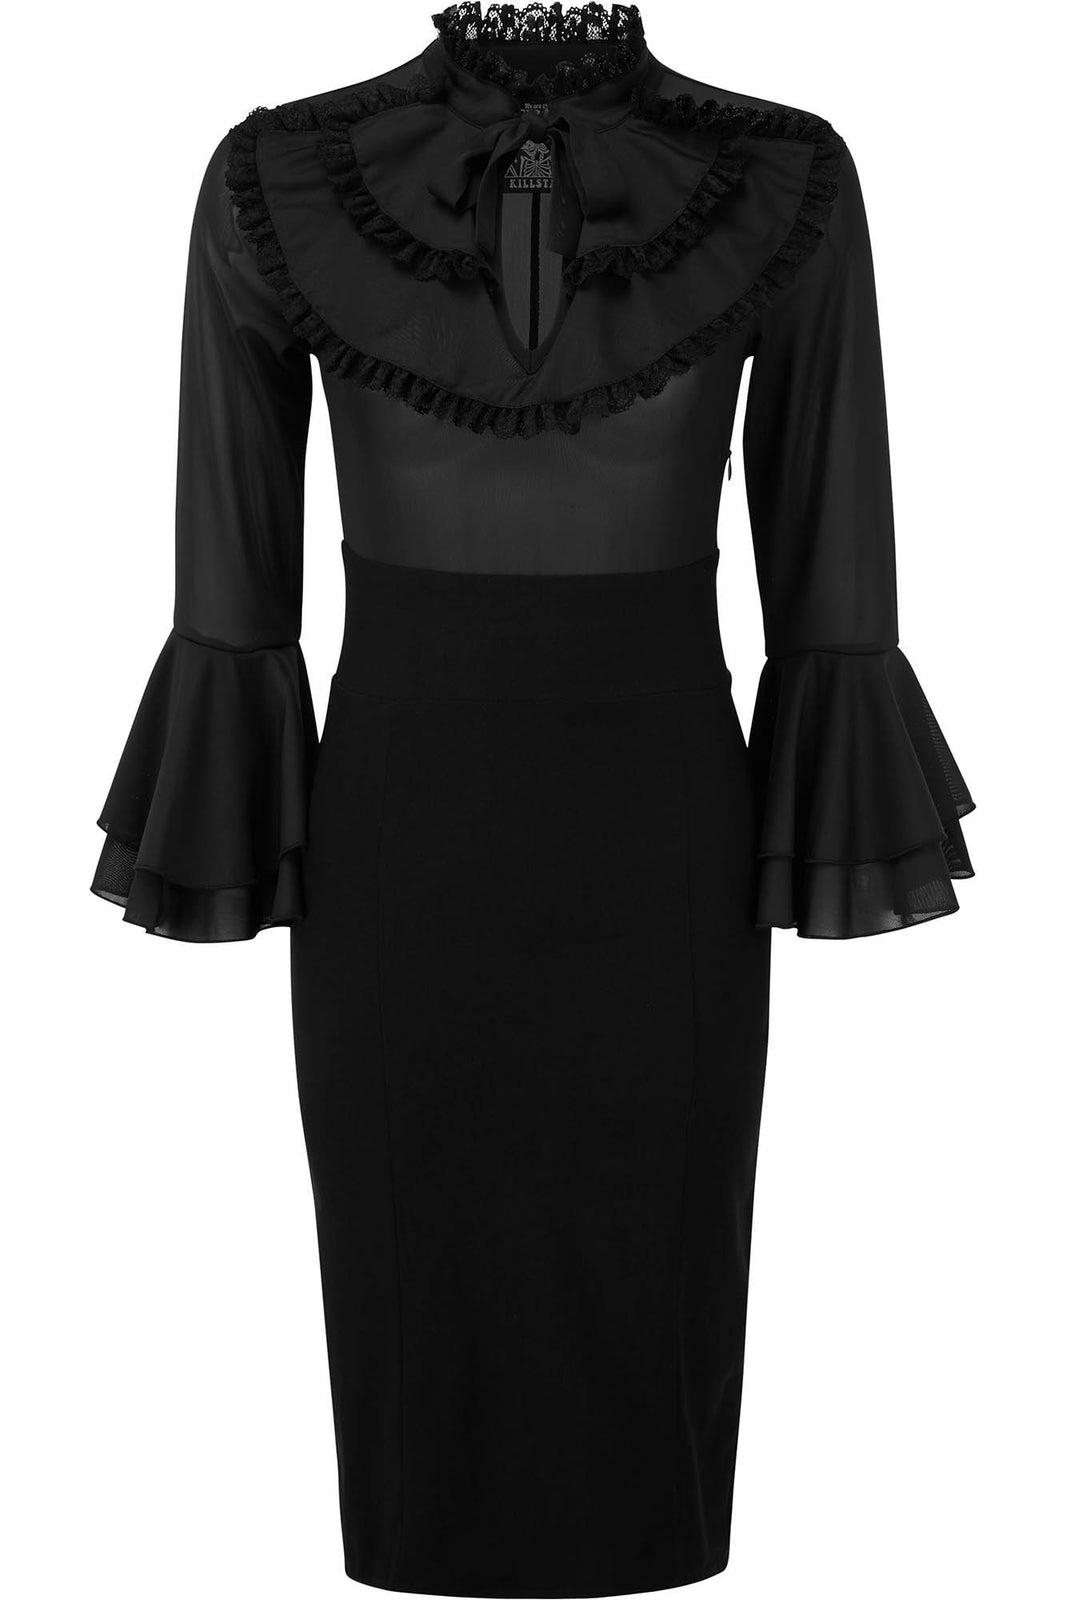 Glamour Ghoul Pencil Dress